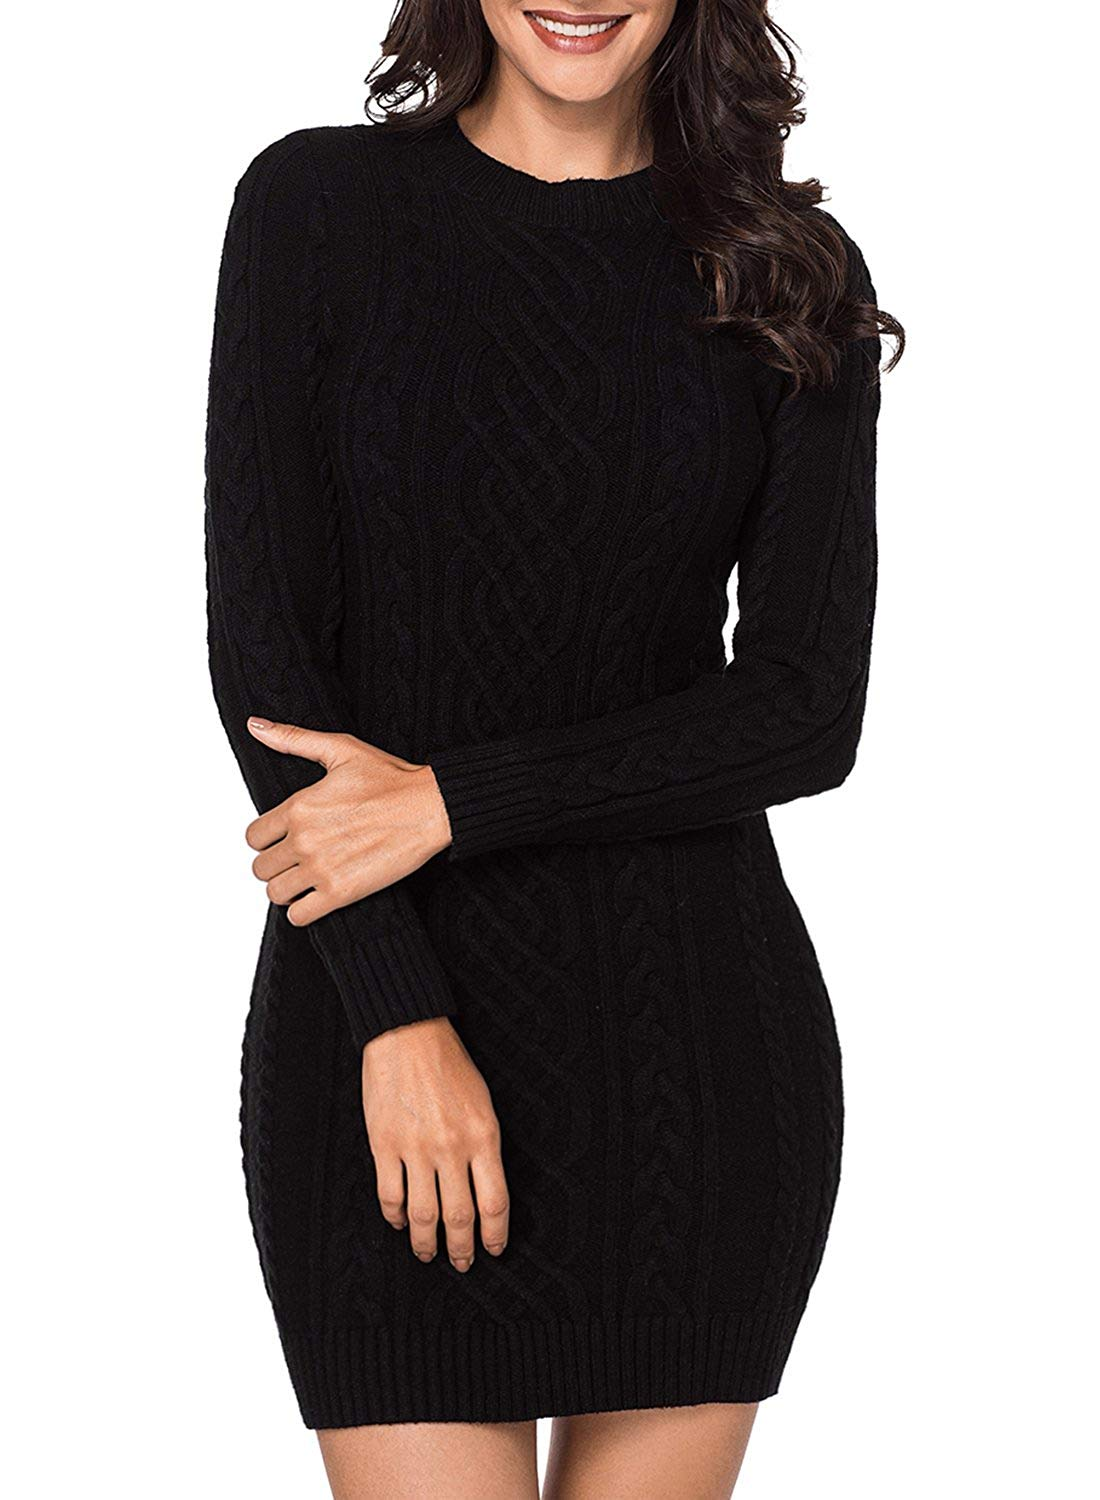 47d6c1a55a0 LOSRLY Women Crew Neck Long Sleeve Cable Knit Bodycon Sweater Midi Dress